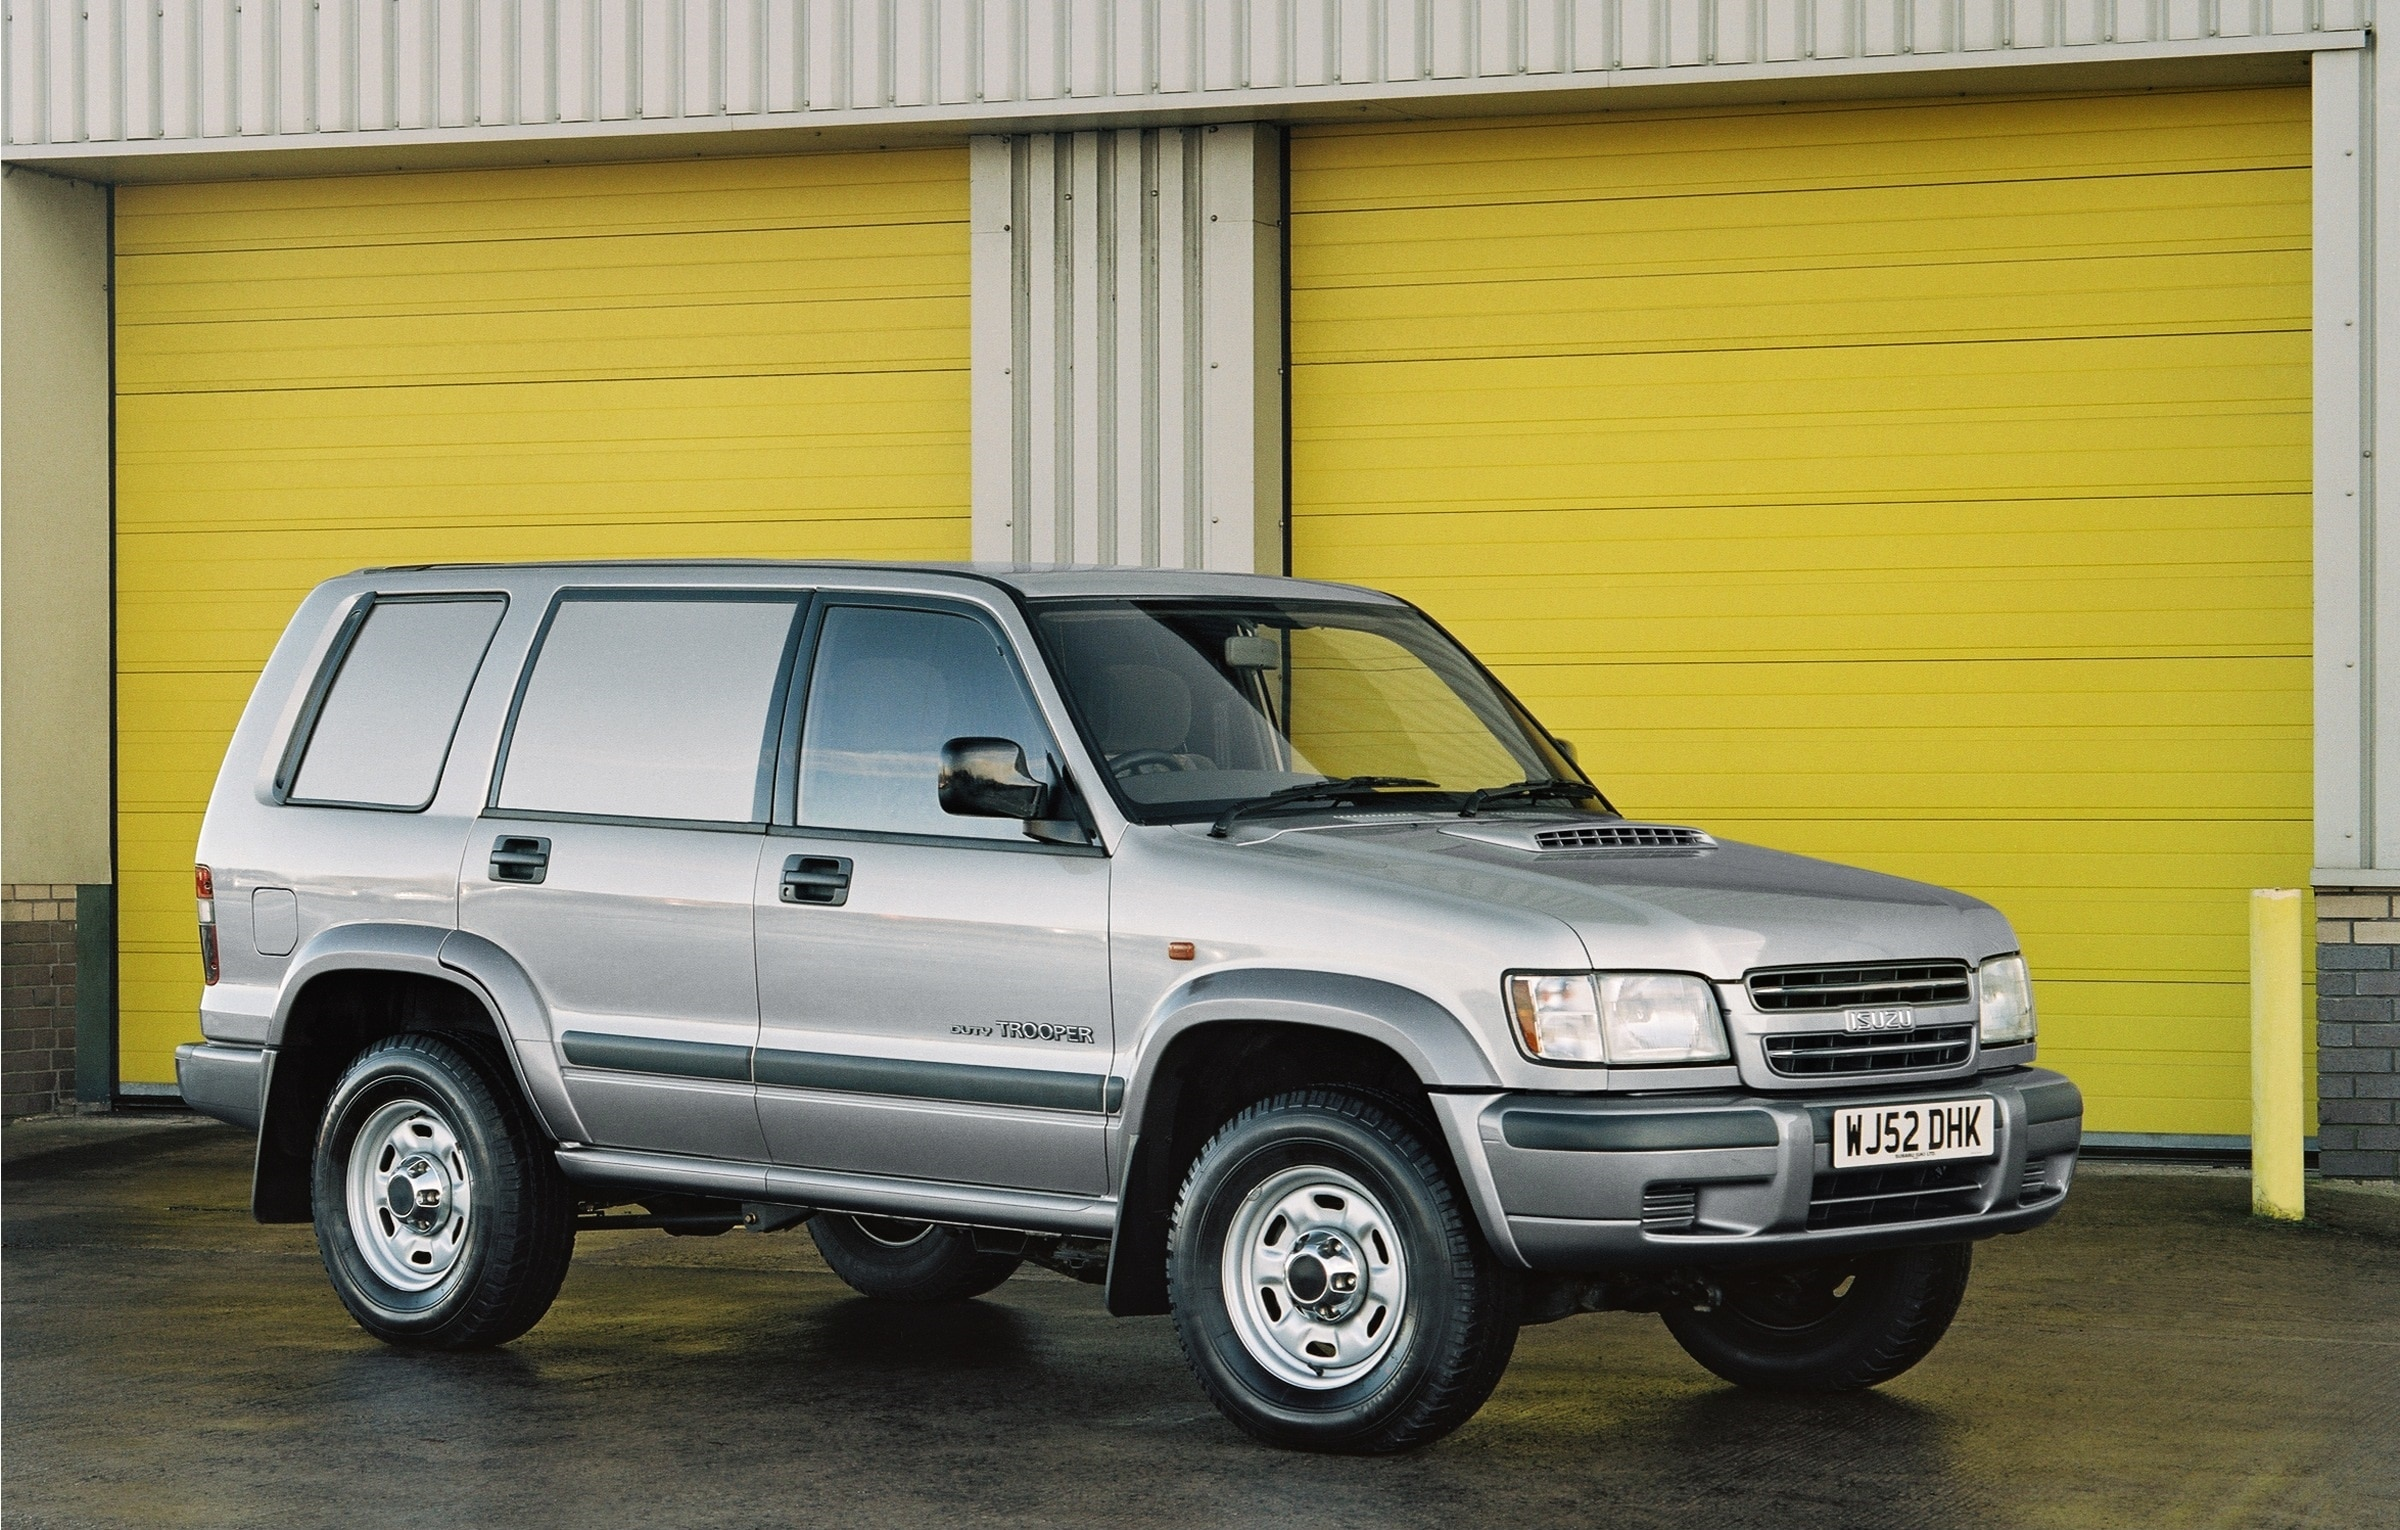 Isuzu Trooper, Isuzu, Trooper, 4x4, off road, agricultural, tough truck, motoring, automotive, car, cars, retro car, classic car, autotrader, ebay, ebay motors, car sales, cheap car,